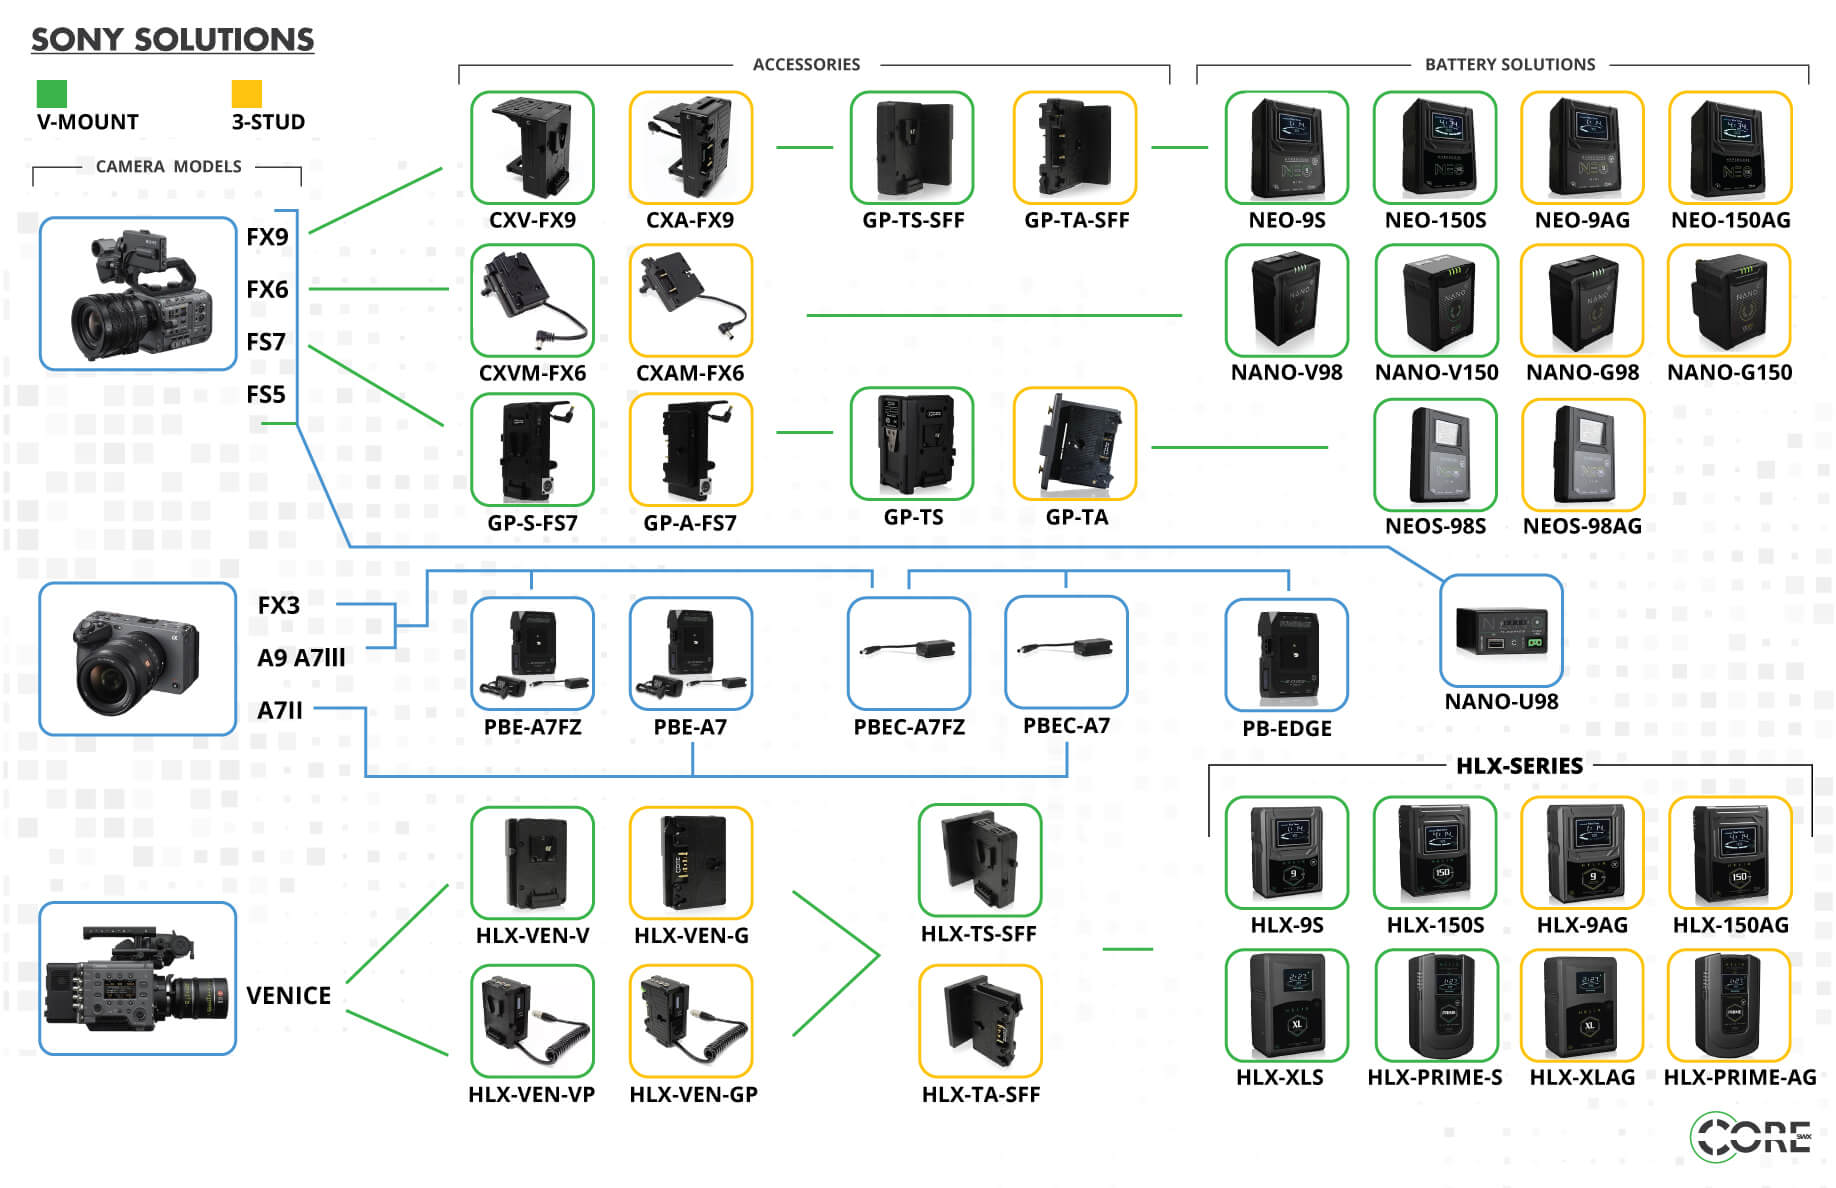 Core SWX Sony Power Solutions